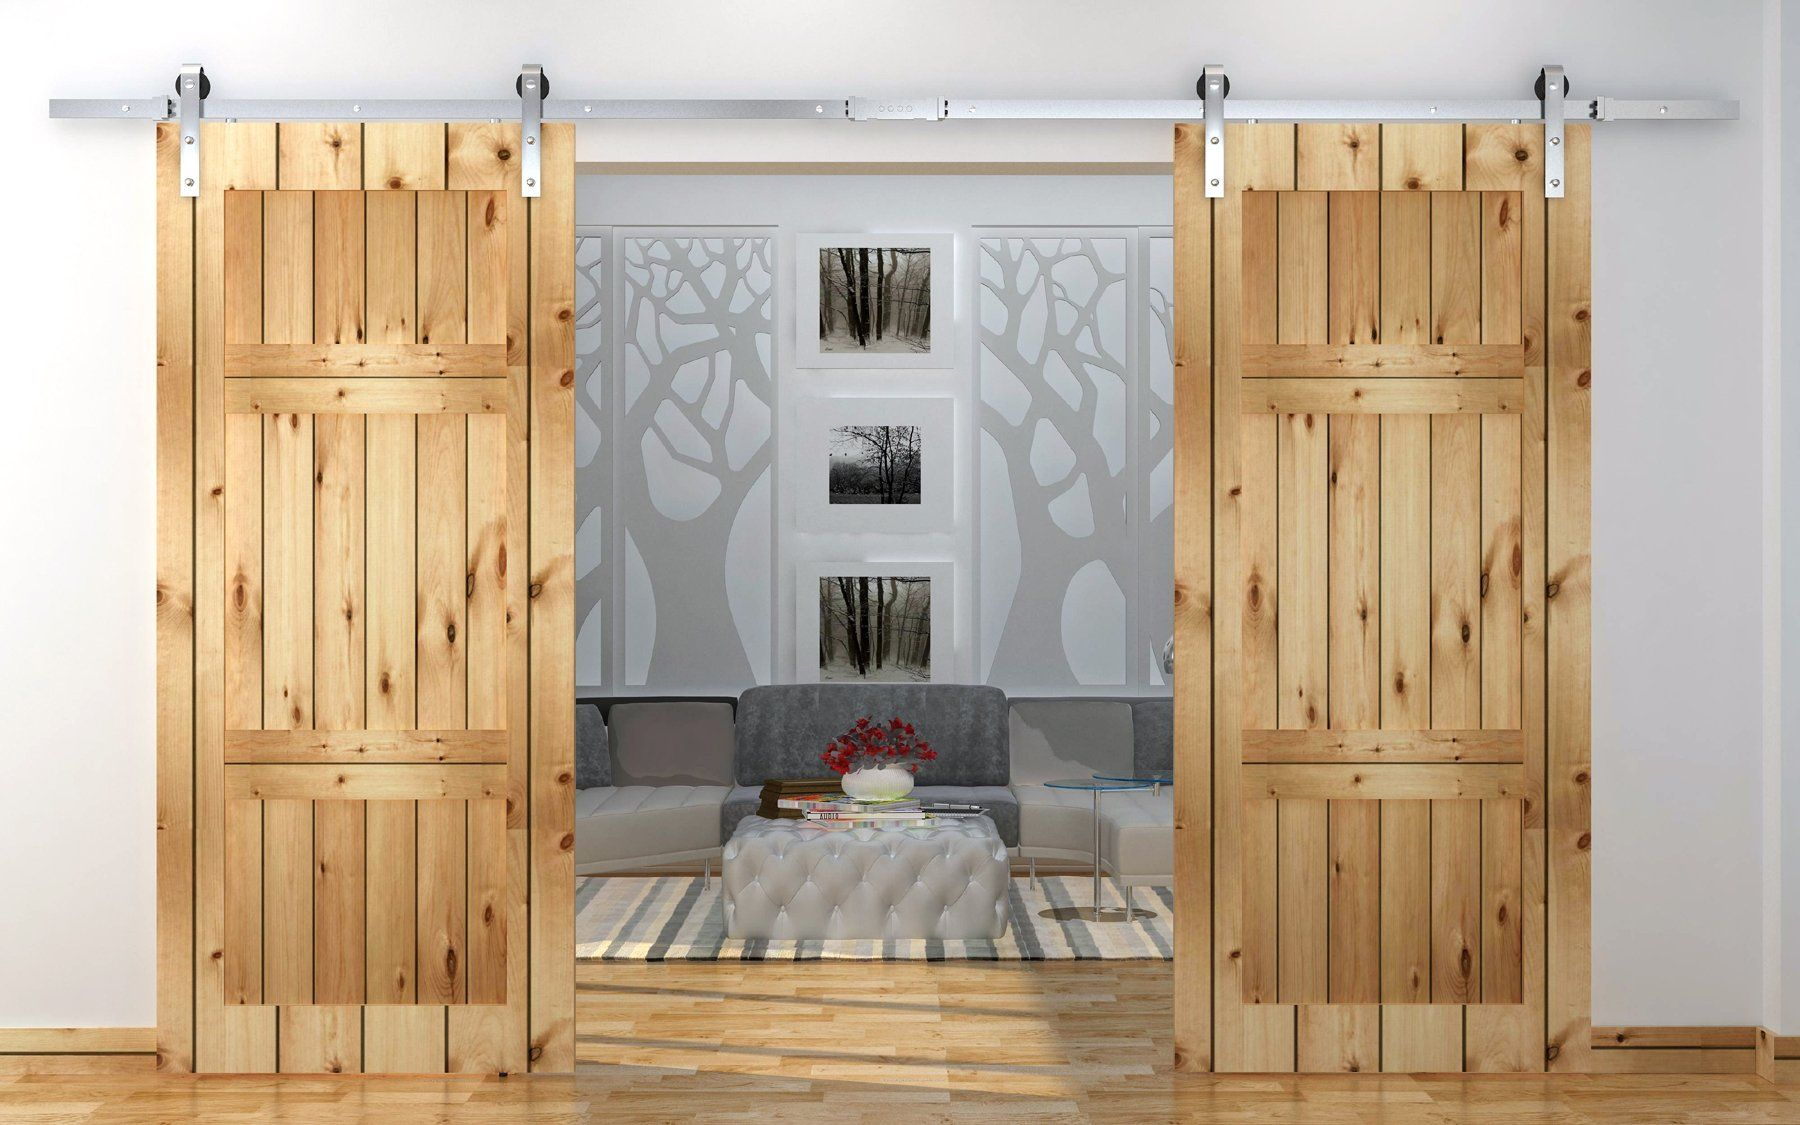 Tms 12 Ft Country Stainless Steel Sliding Barn Wood Double Door Hardware Track Set Antique Barn Style Interior Doors Sliding Door Hardware Double Barn Doors